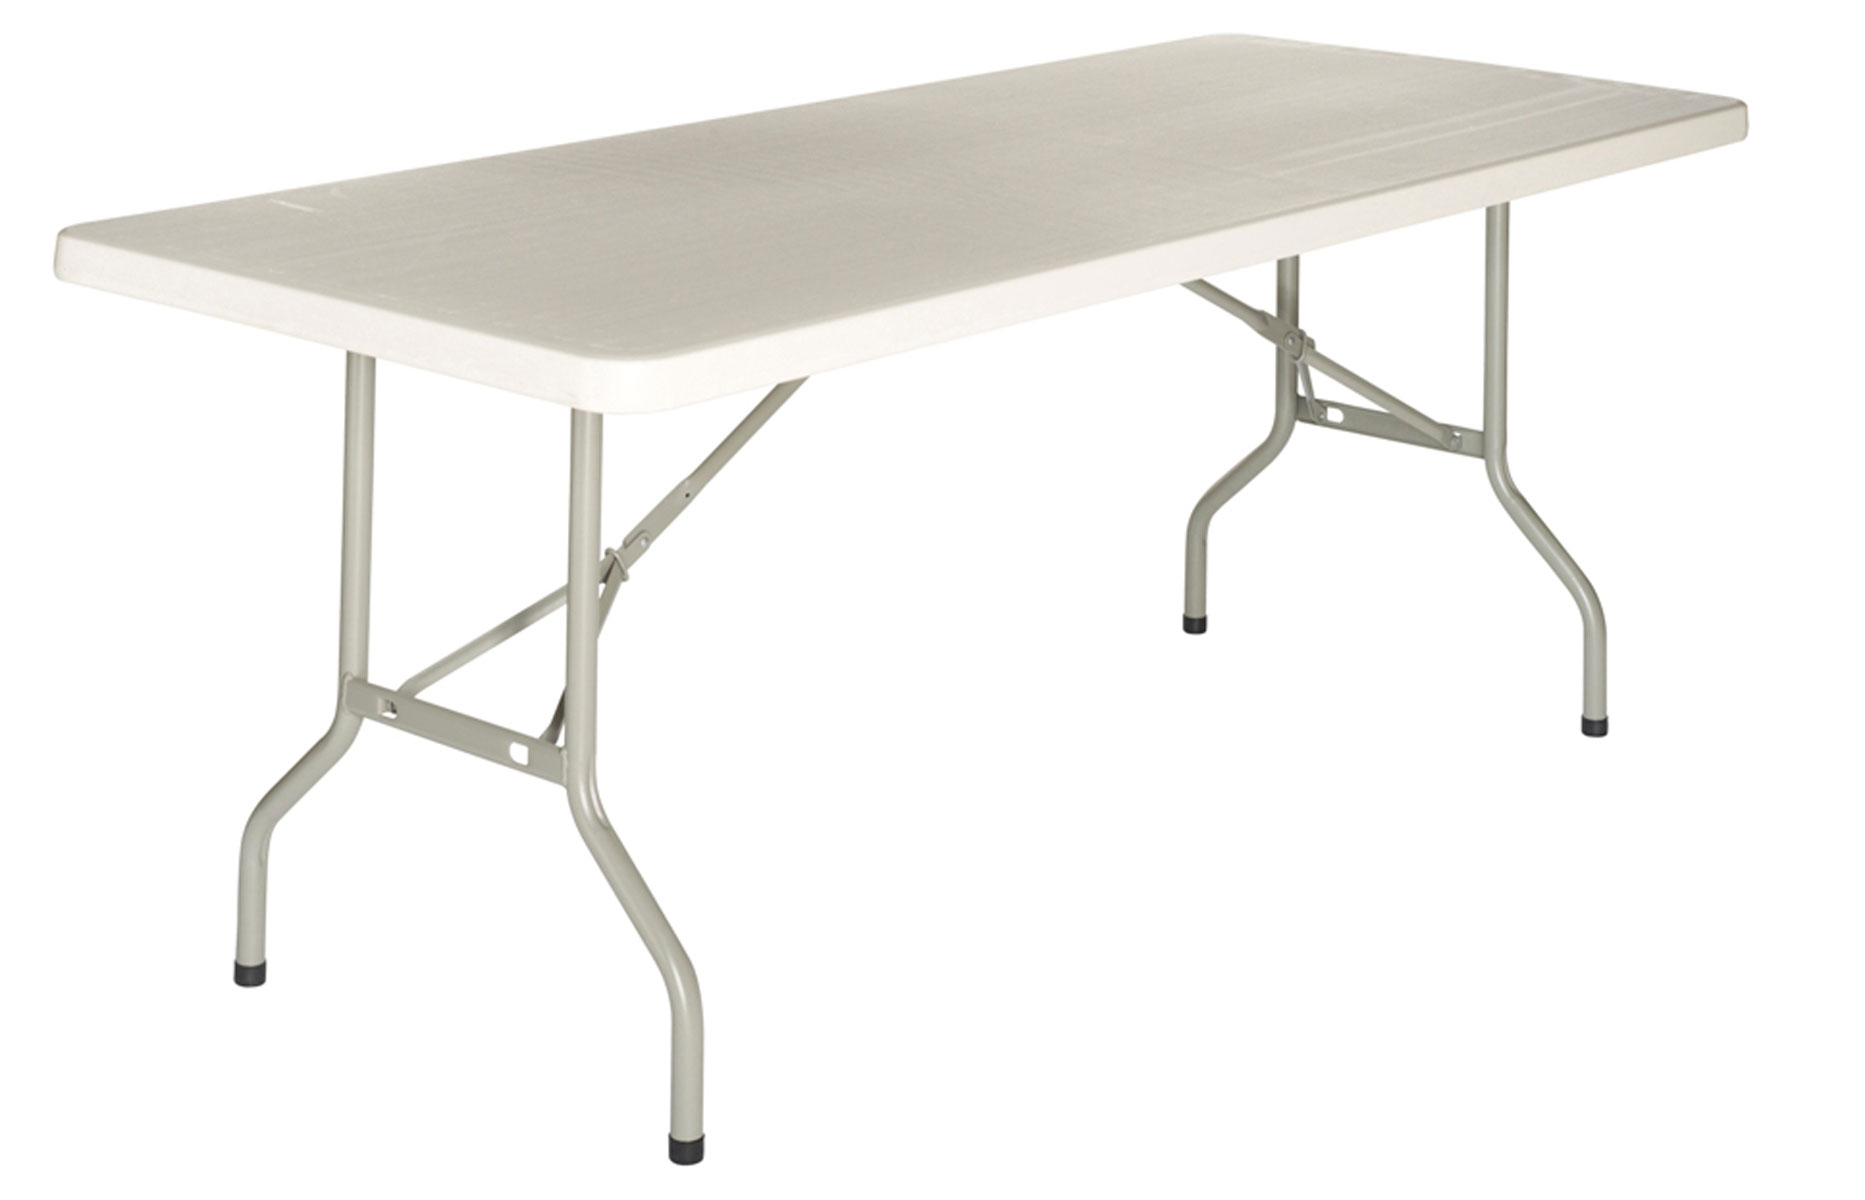 Table pliante en plastique Tulle, table pliante en ...